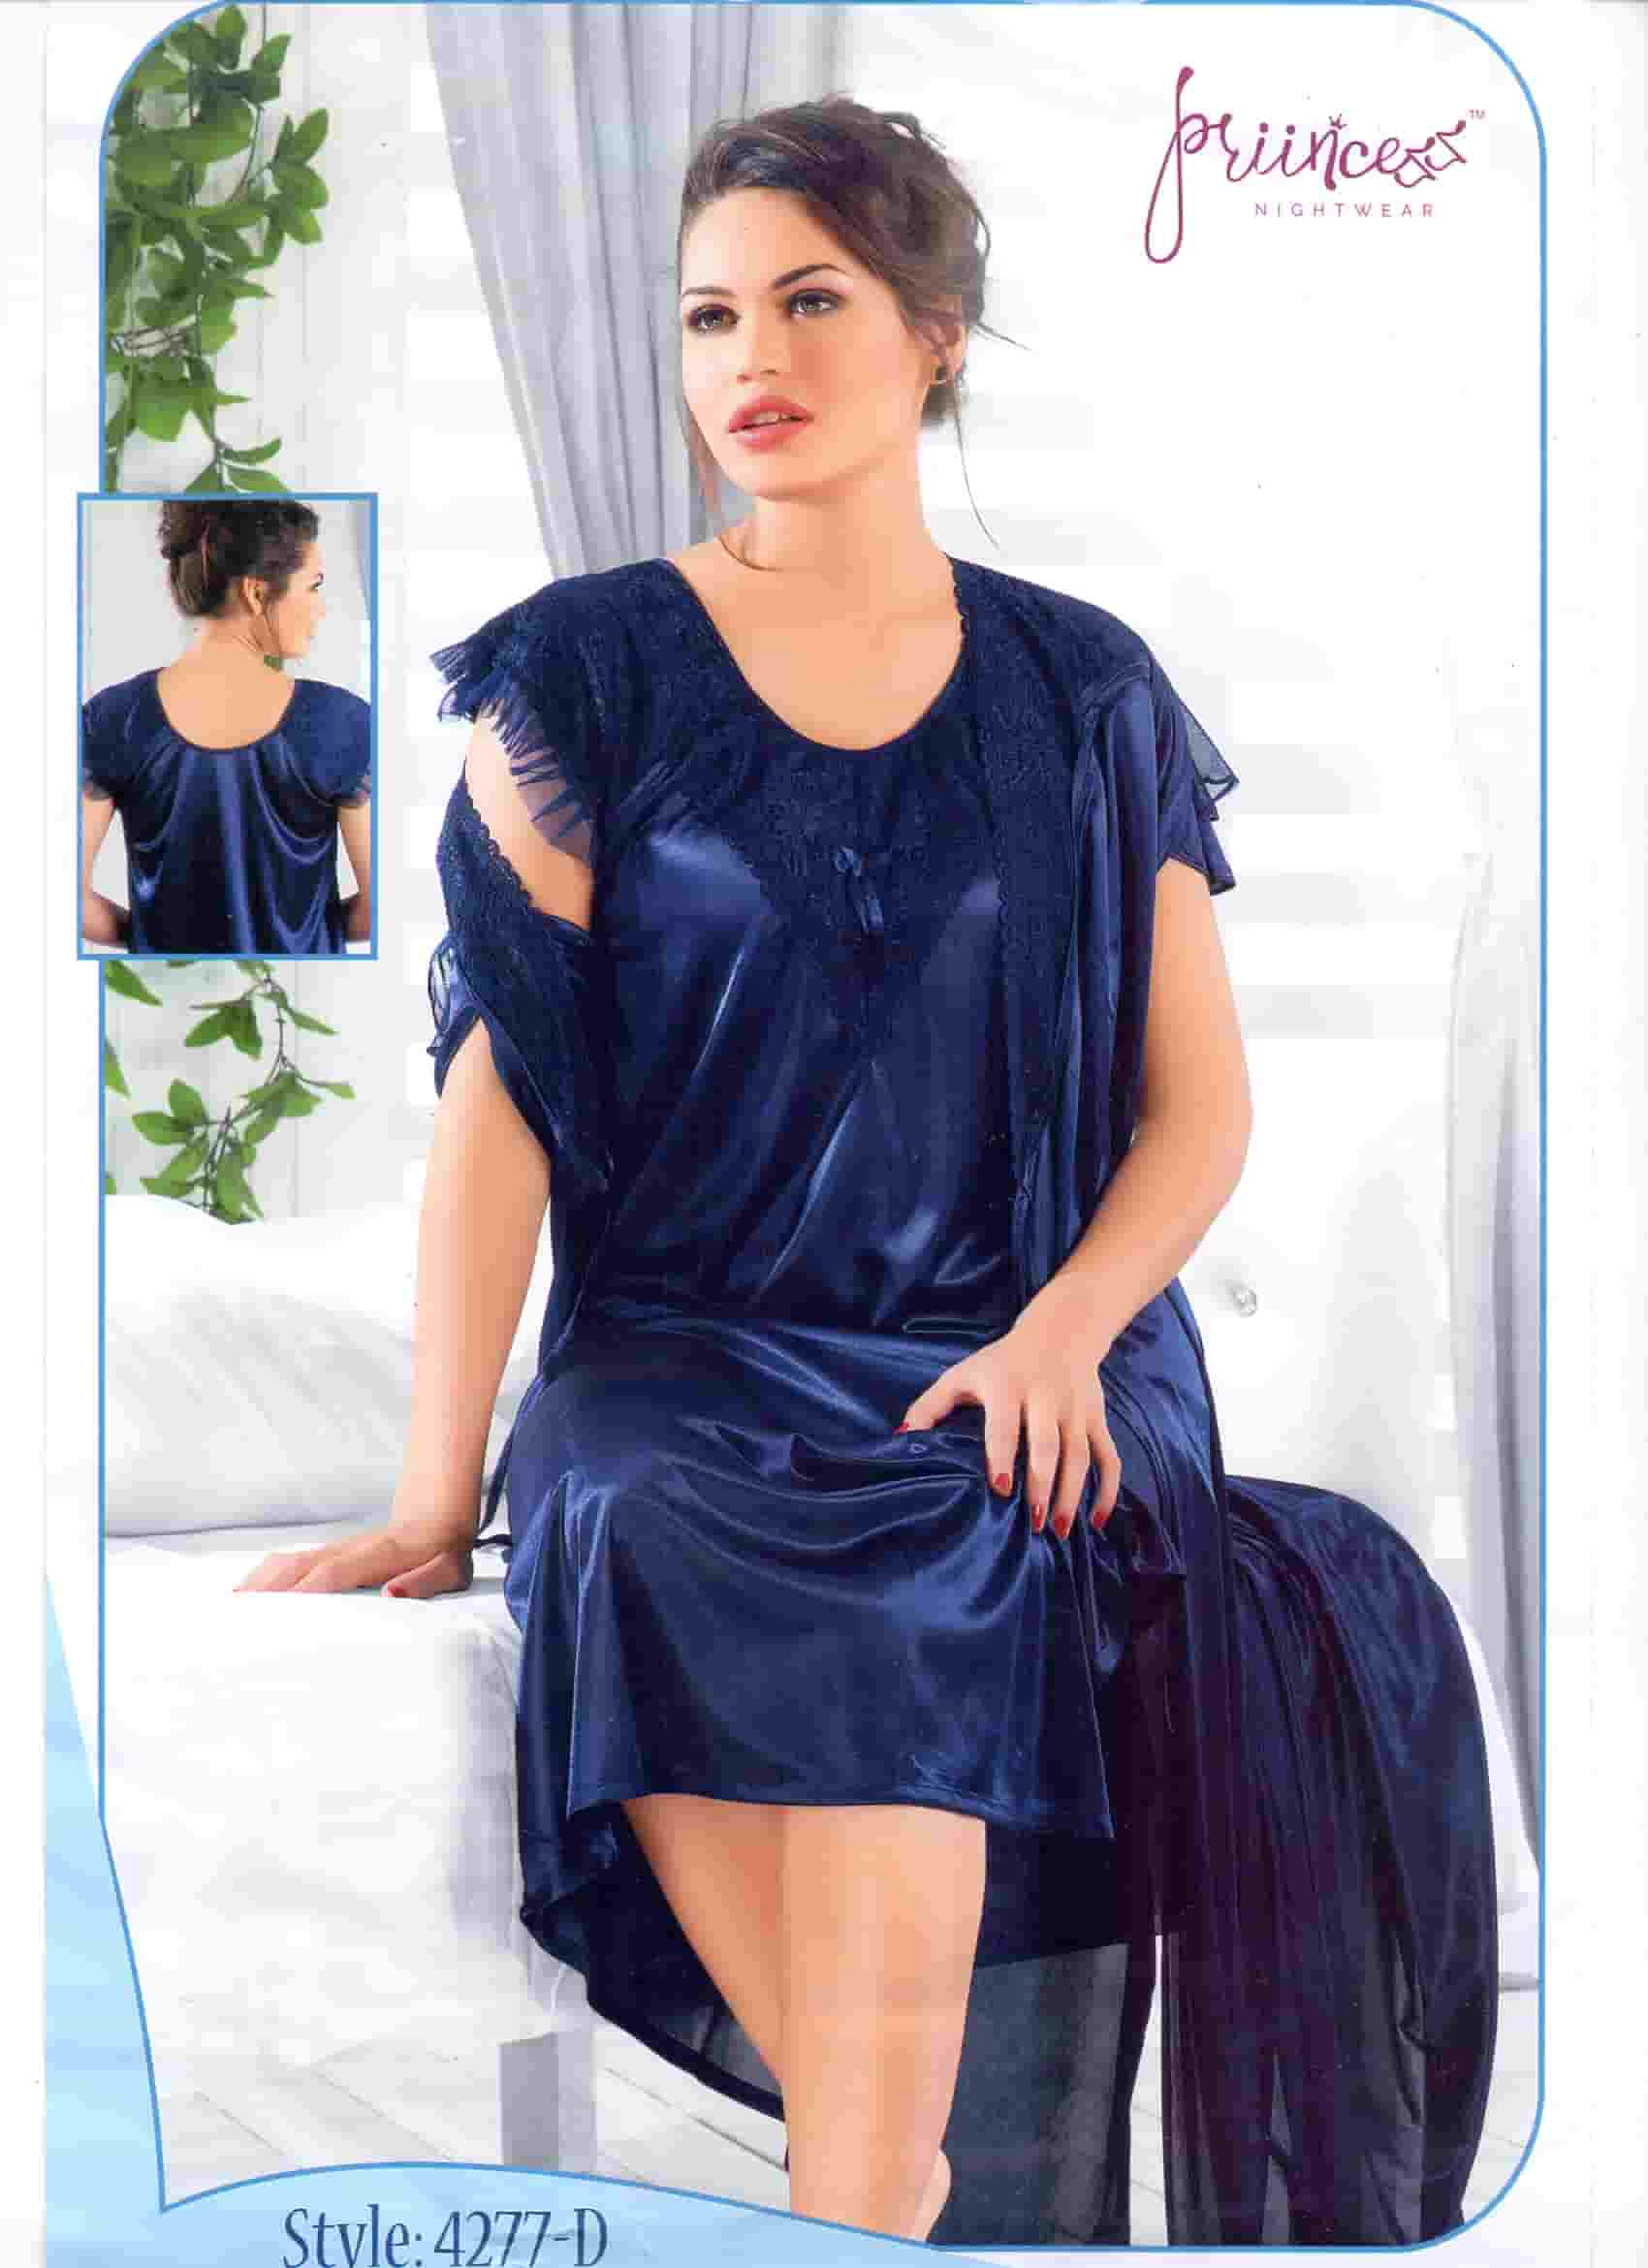 Fashionable Two Part Night Dress-4277 D